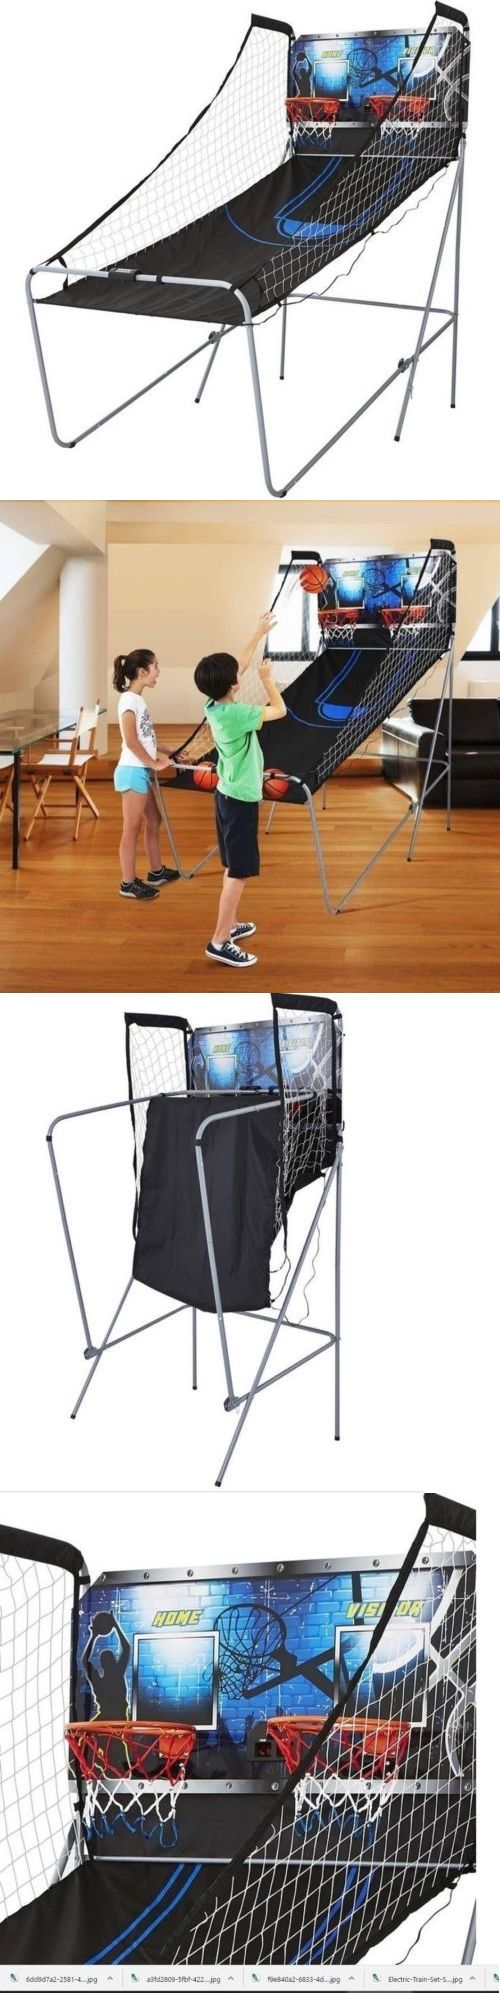 Other Indoor Games 36278: Basketball Game Arcade 2 Player Style Shooting Indoor Home Electronic Foldable BUY IT NOW ONLY: $74.49